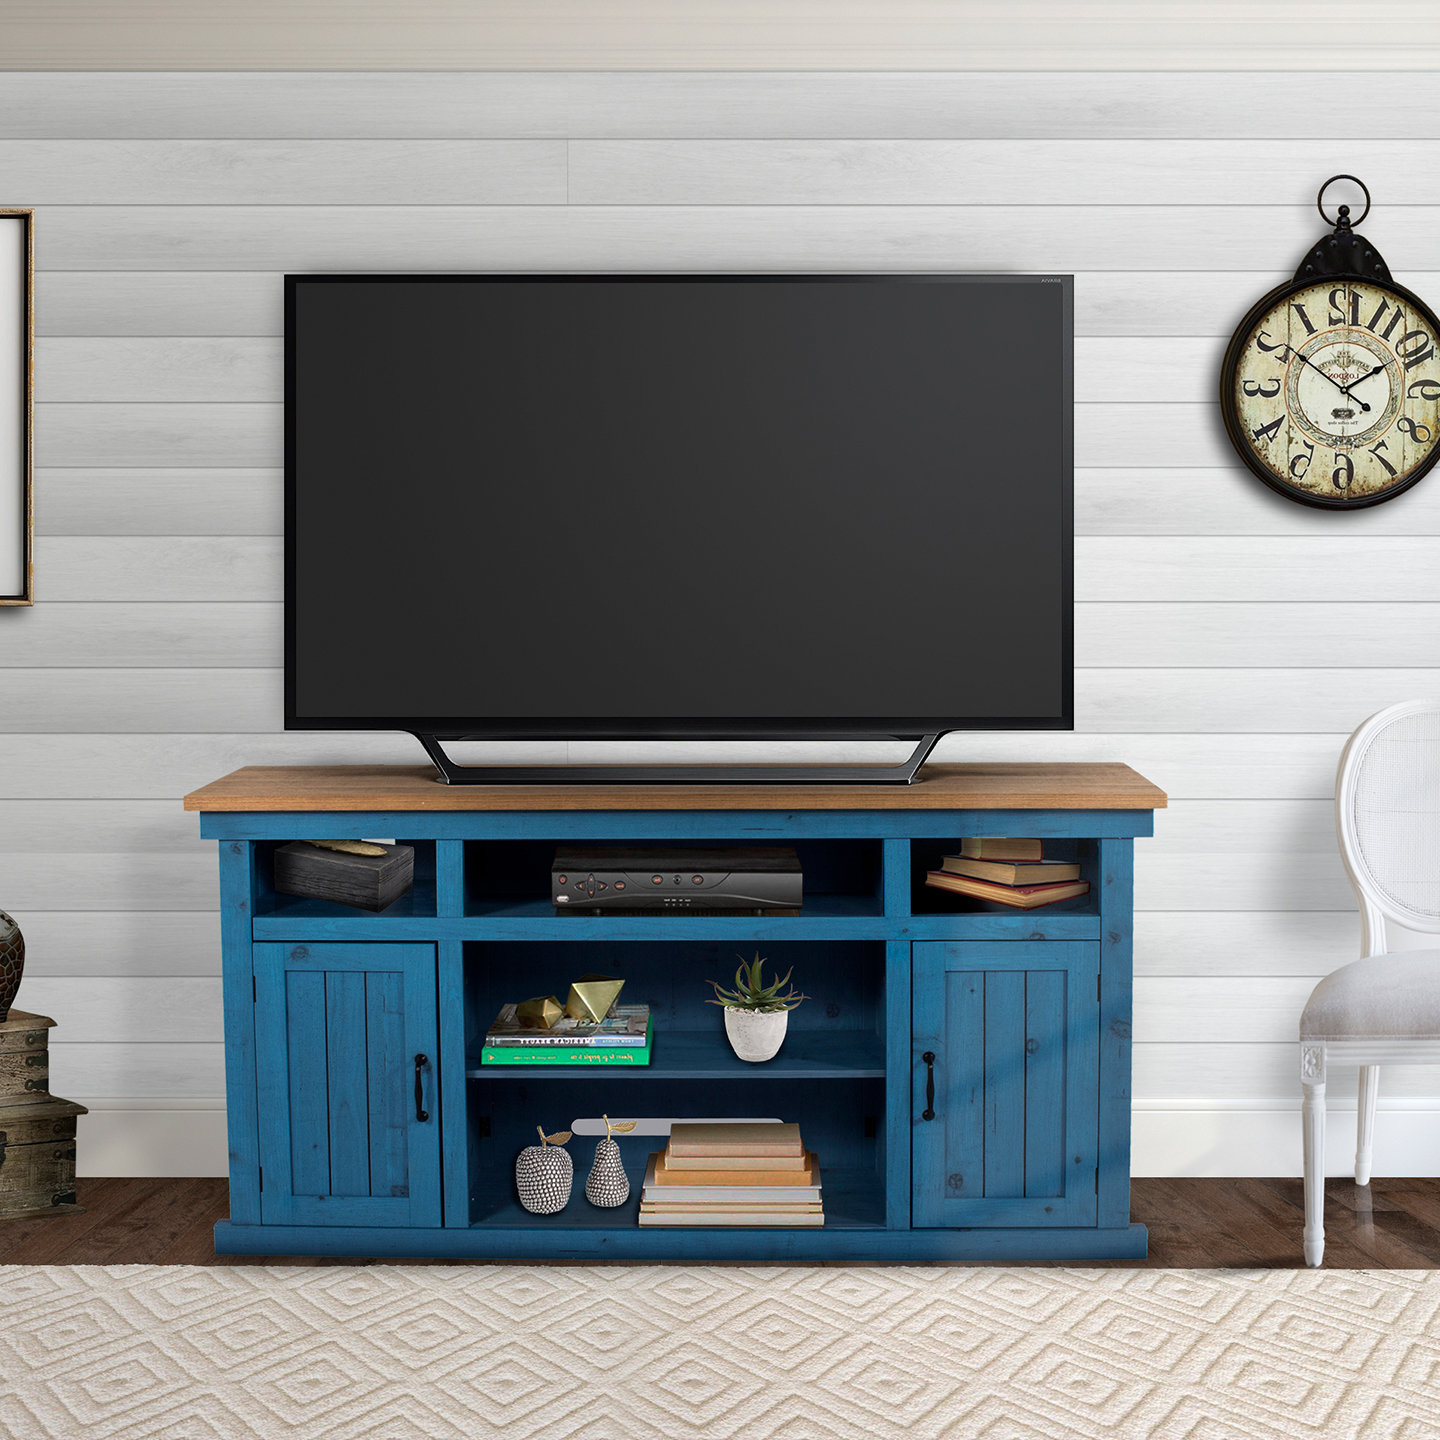 Blue Tv Stands You'll Love | Wayfair With Regard To Century Blue 60 Inch Tv Stands (View 4 of 20)